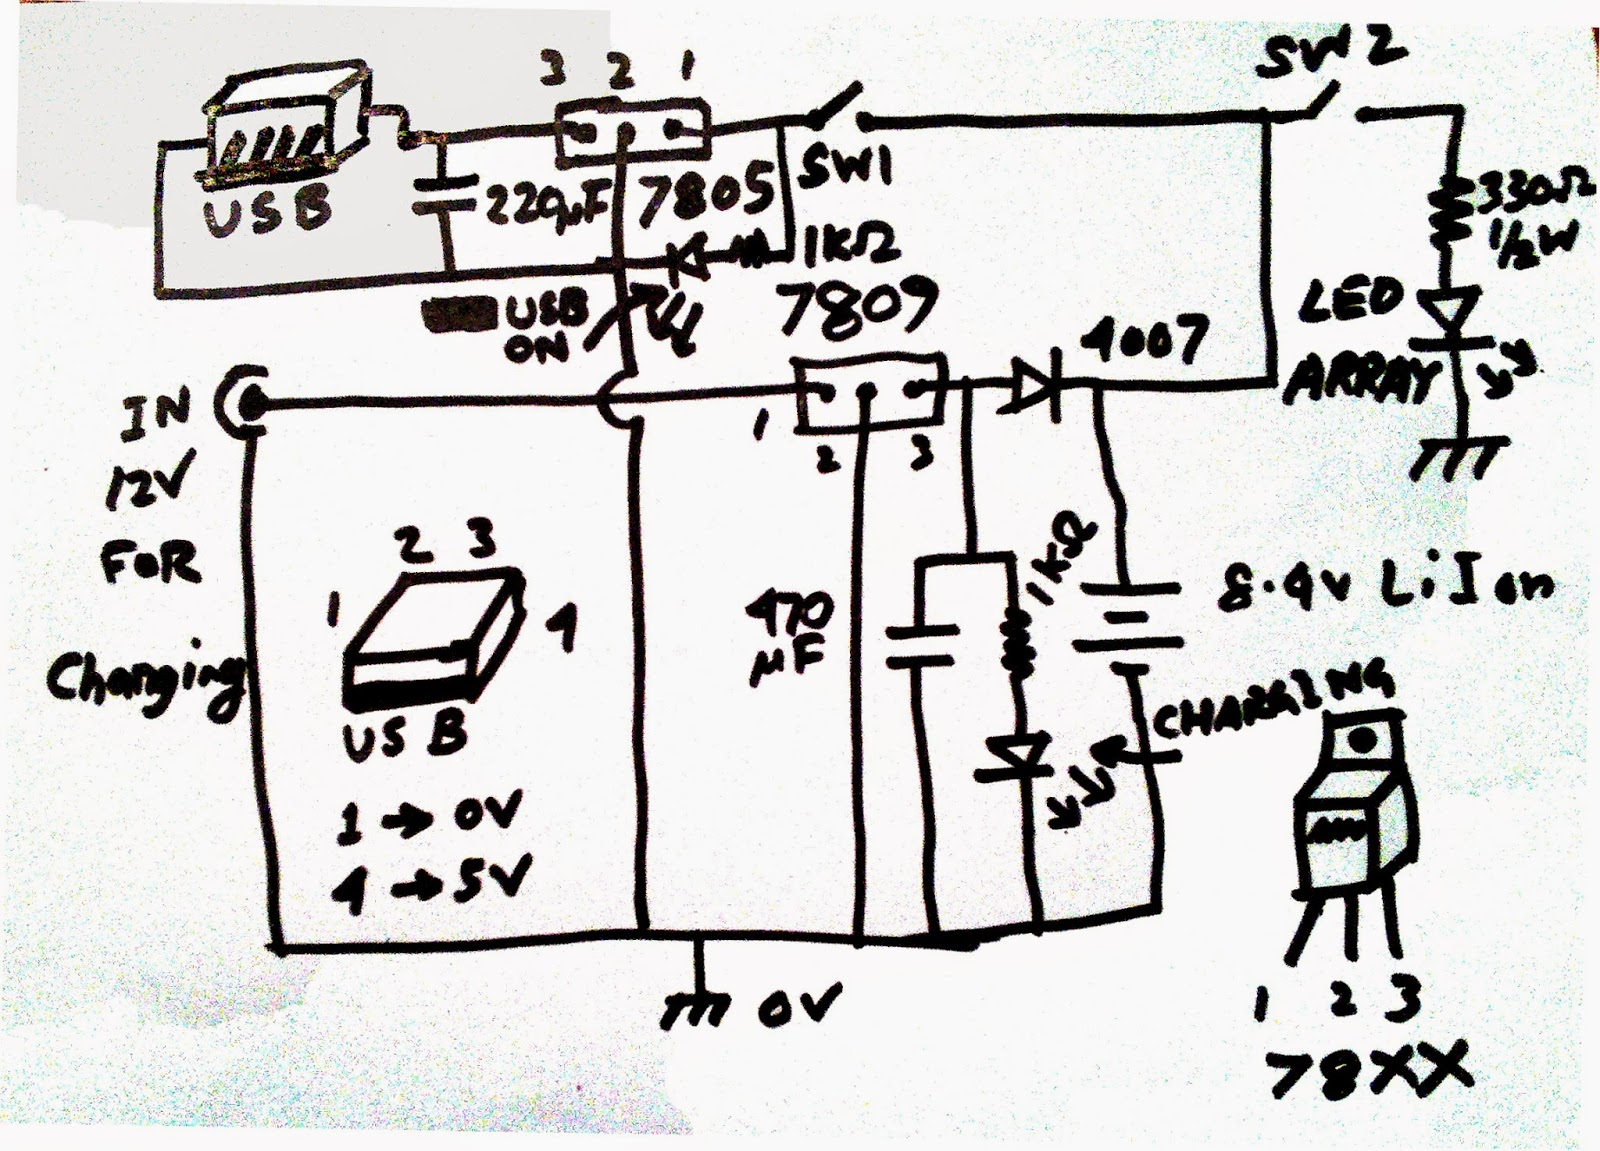 small resolution of parallel battery wiring diagram scavenger u0026 39 s blog september 2014